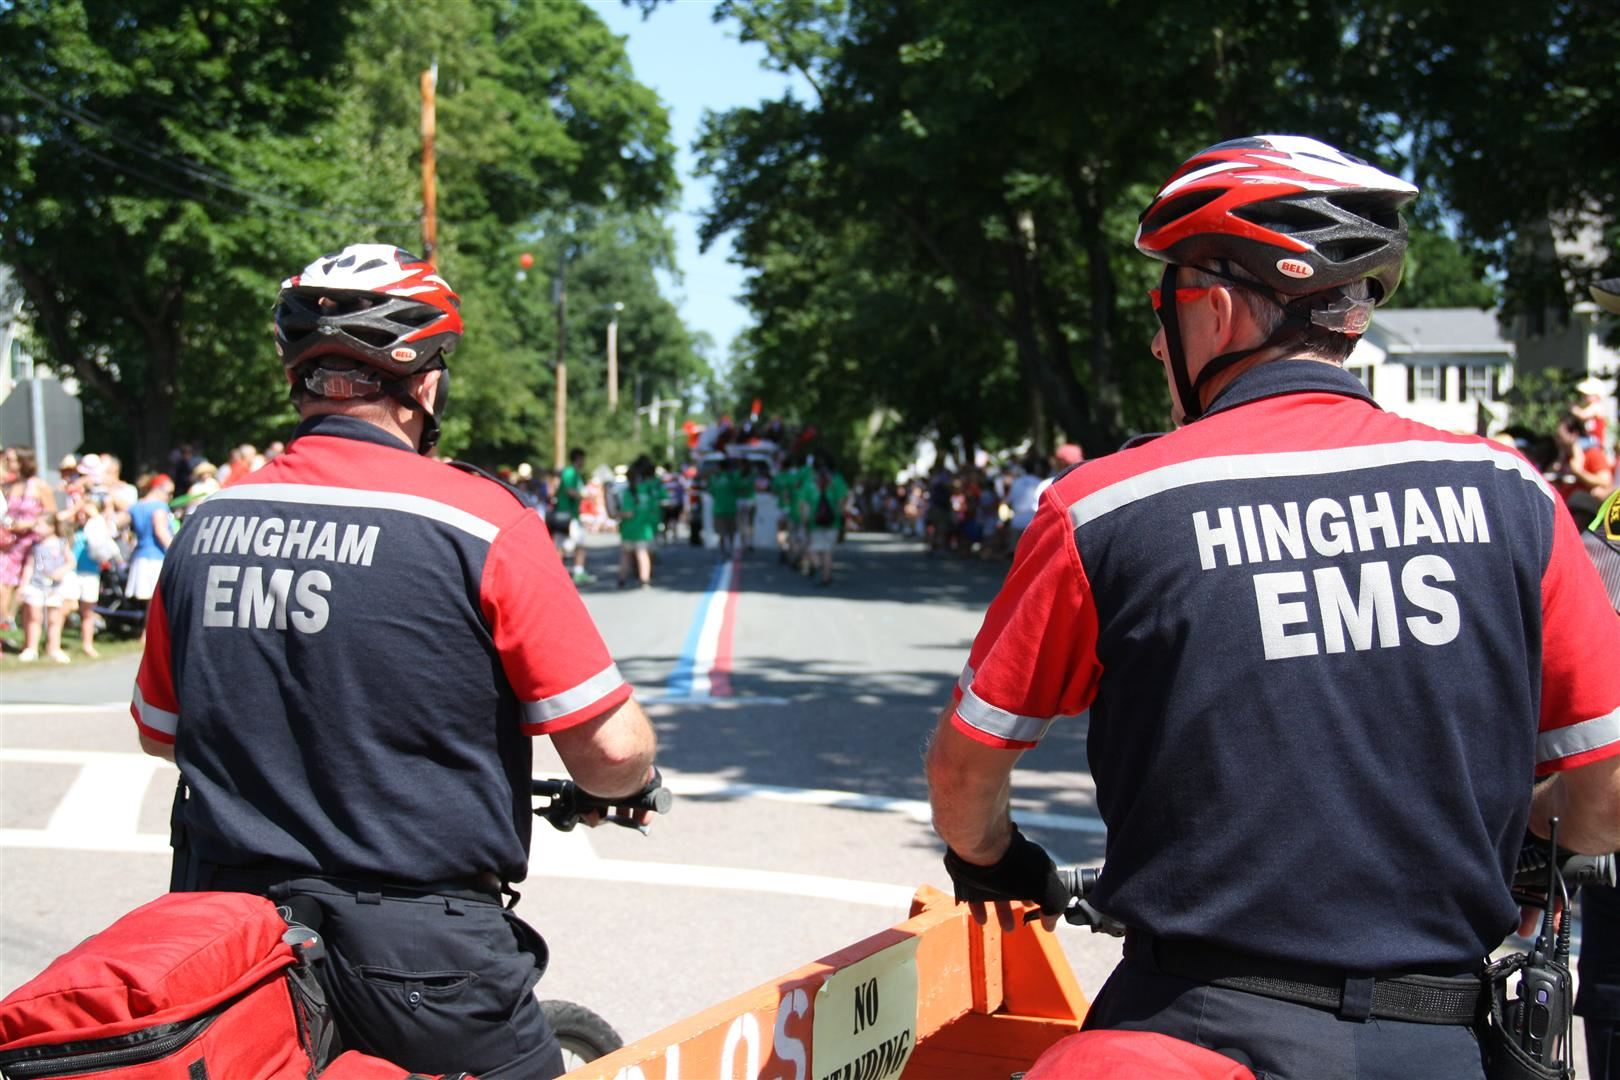 Hingham EMS Staff on Bicycles